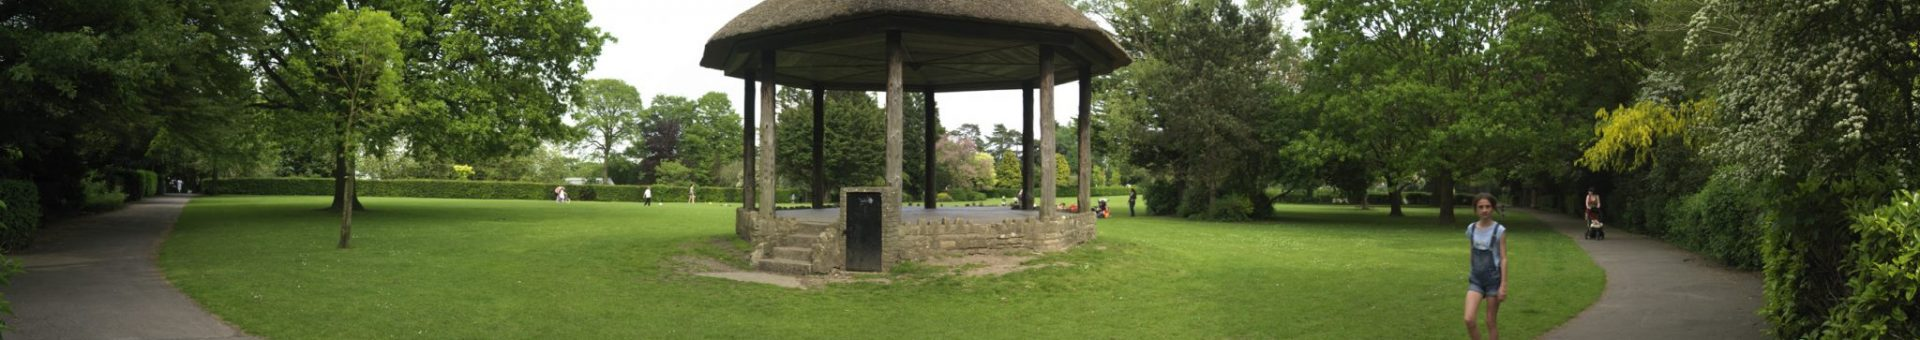 Bandstand at Victoria Park, Frome